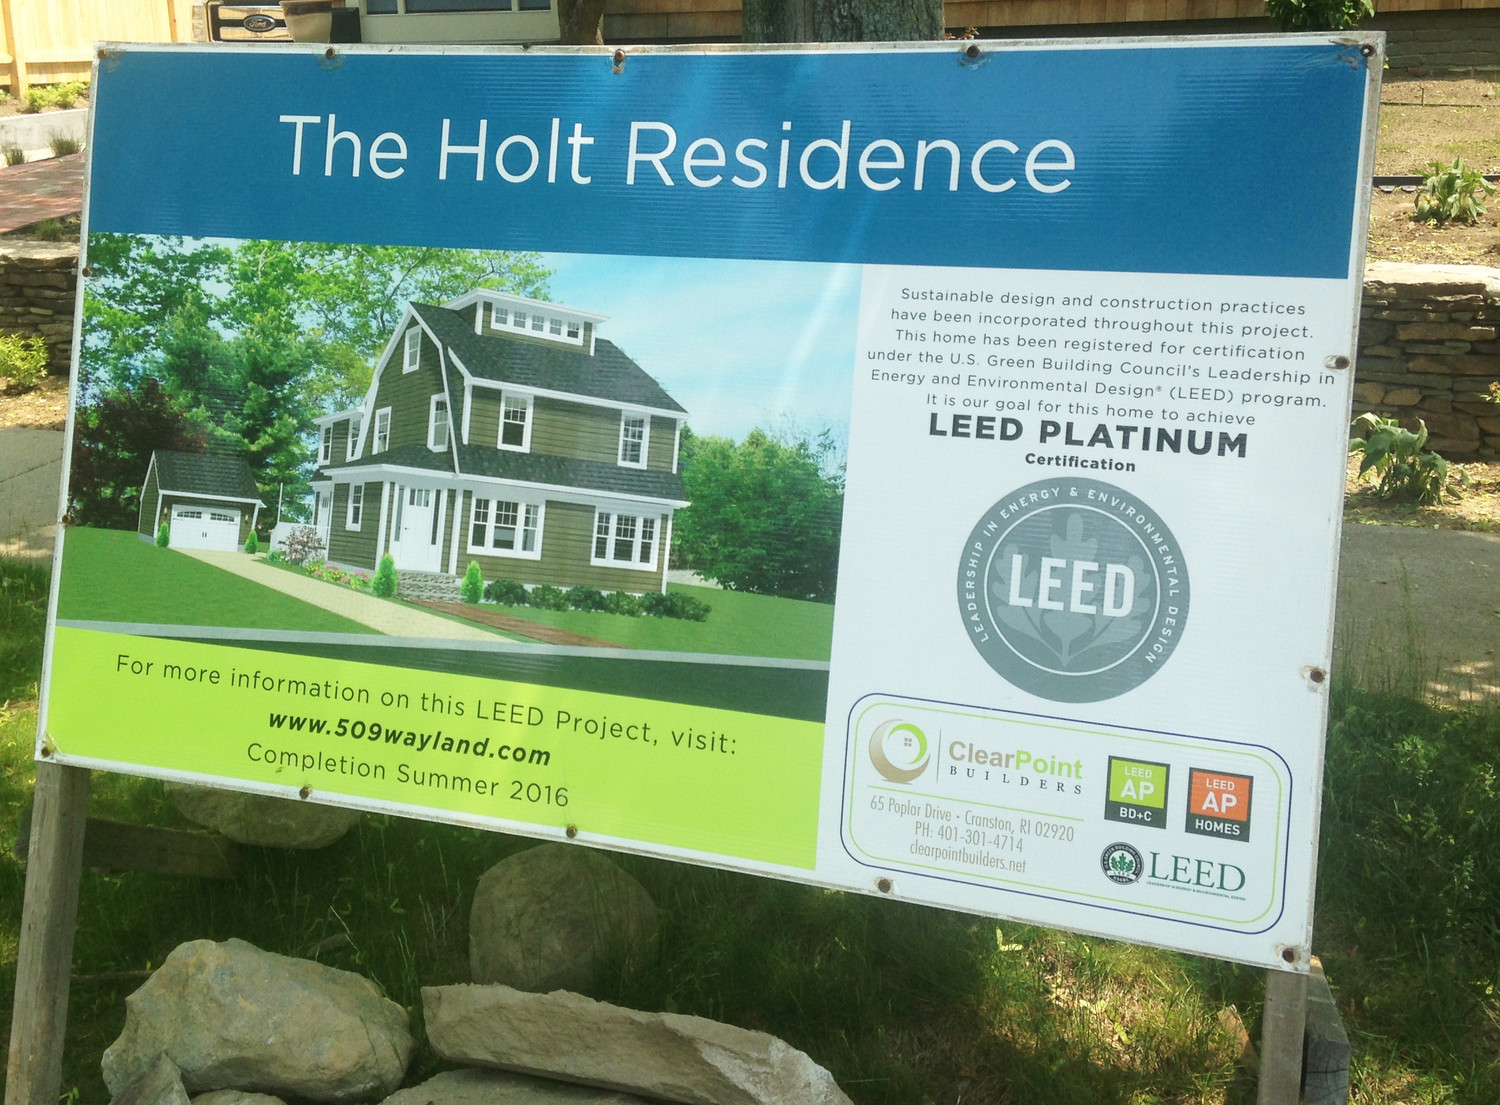 The sign advertising the LEED Platinum Certification of the Holt Residence.